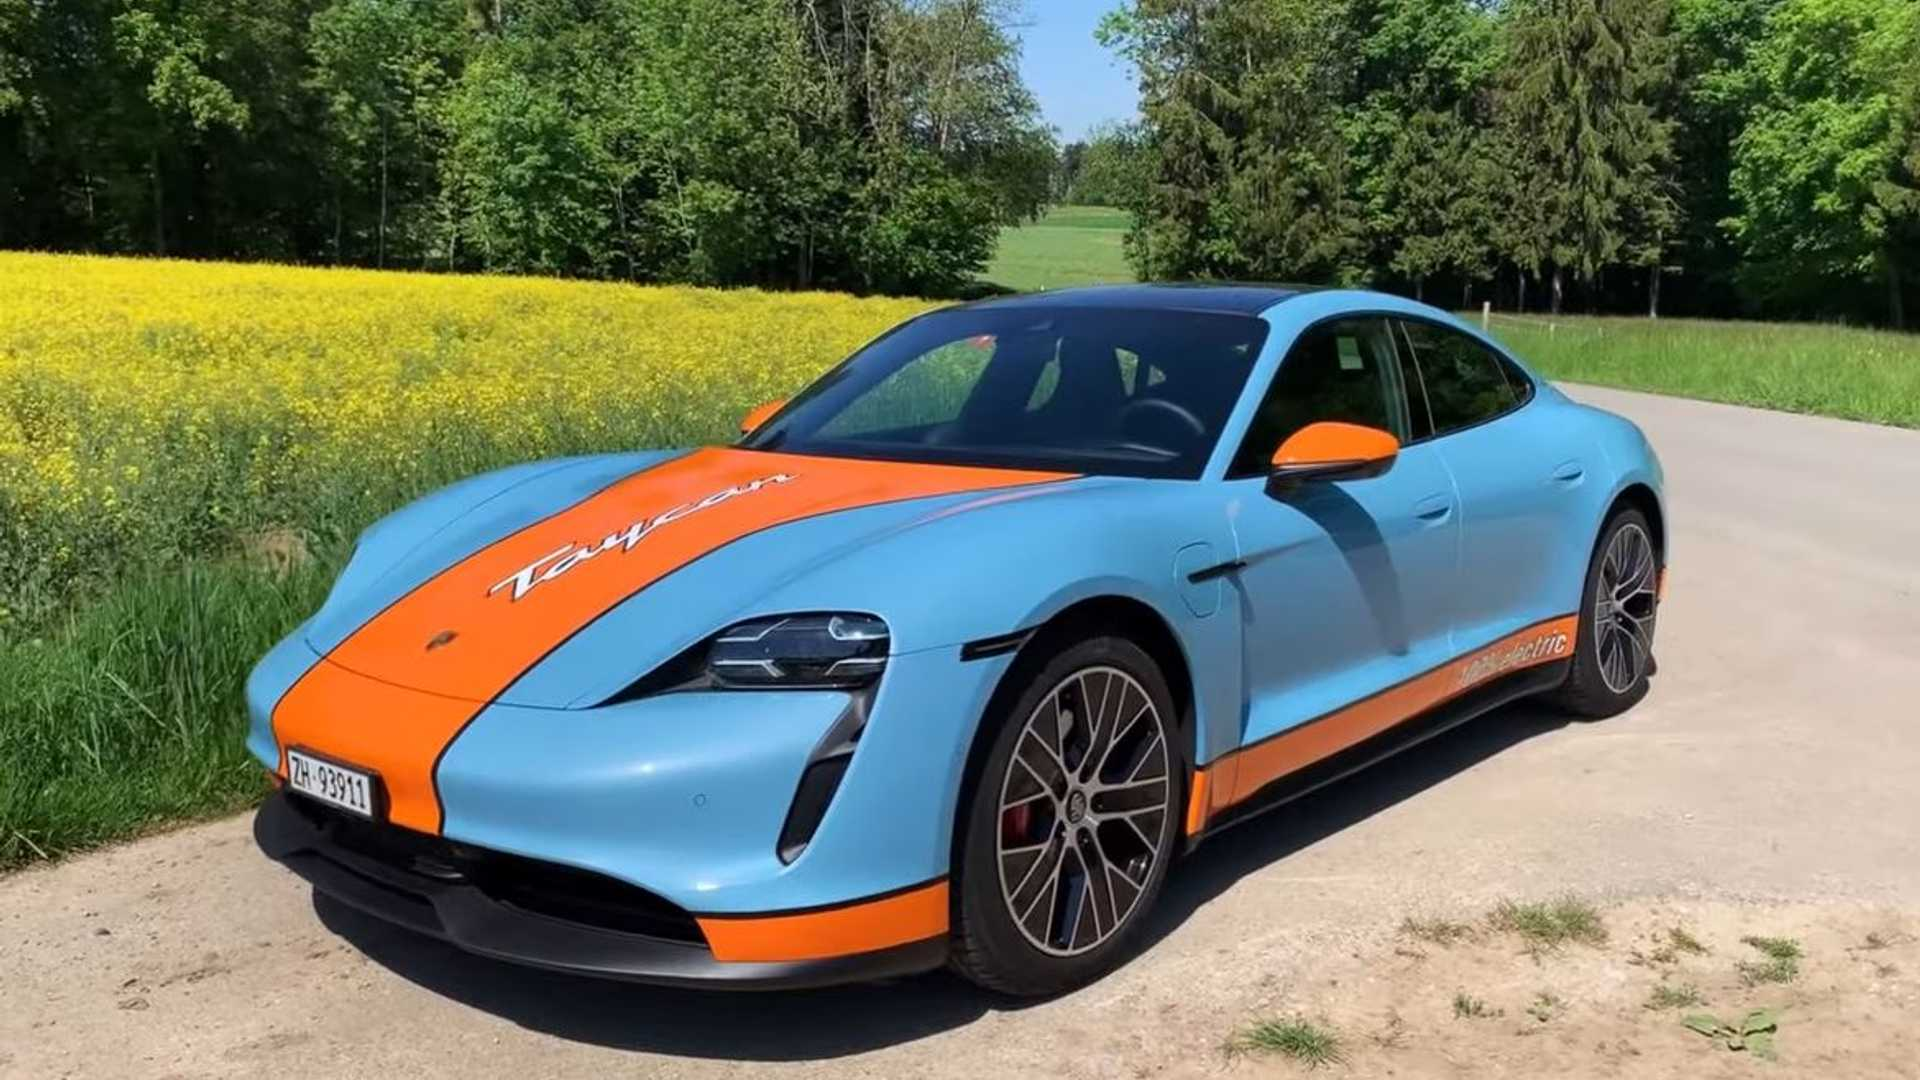 This Informative Porsche Taycan 4s Review Finds The Sweet Spot